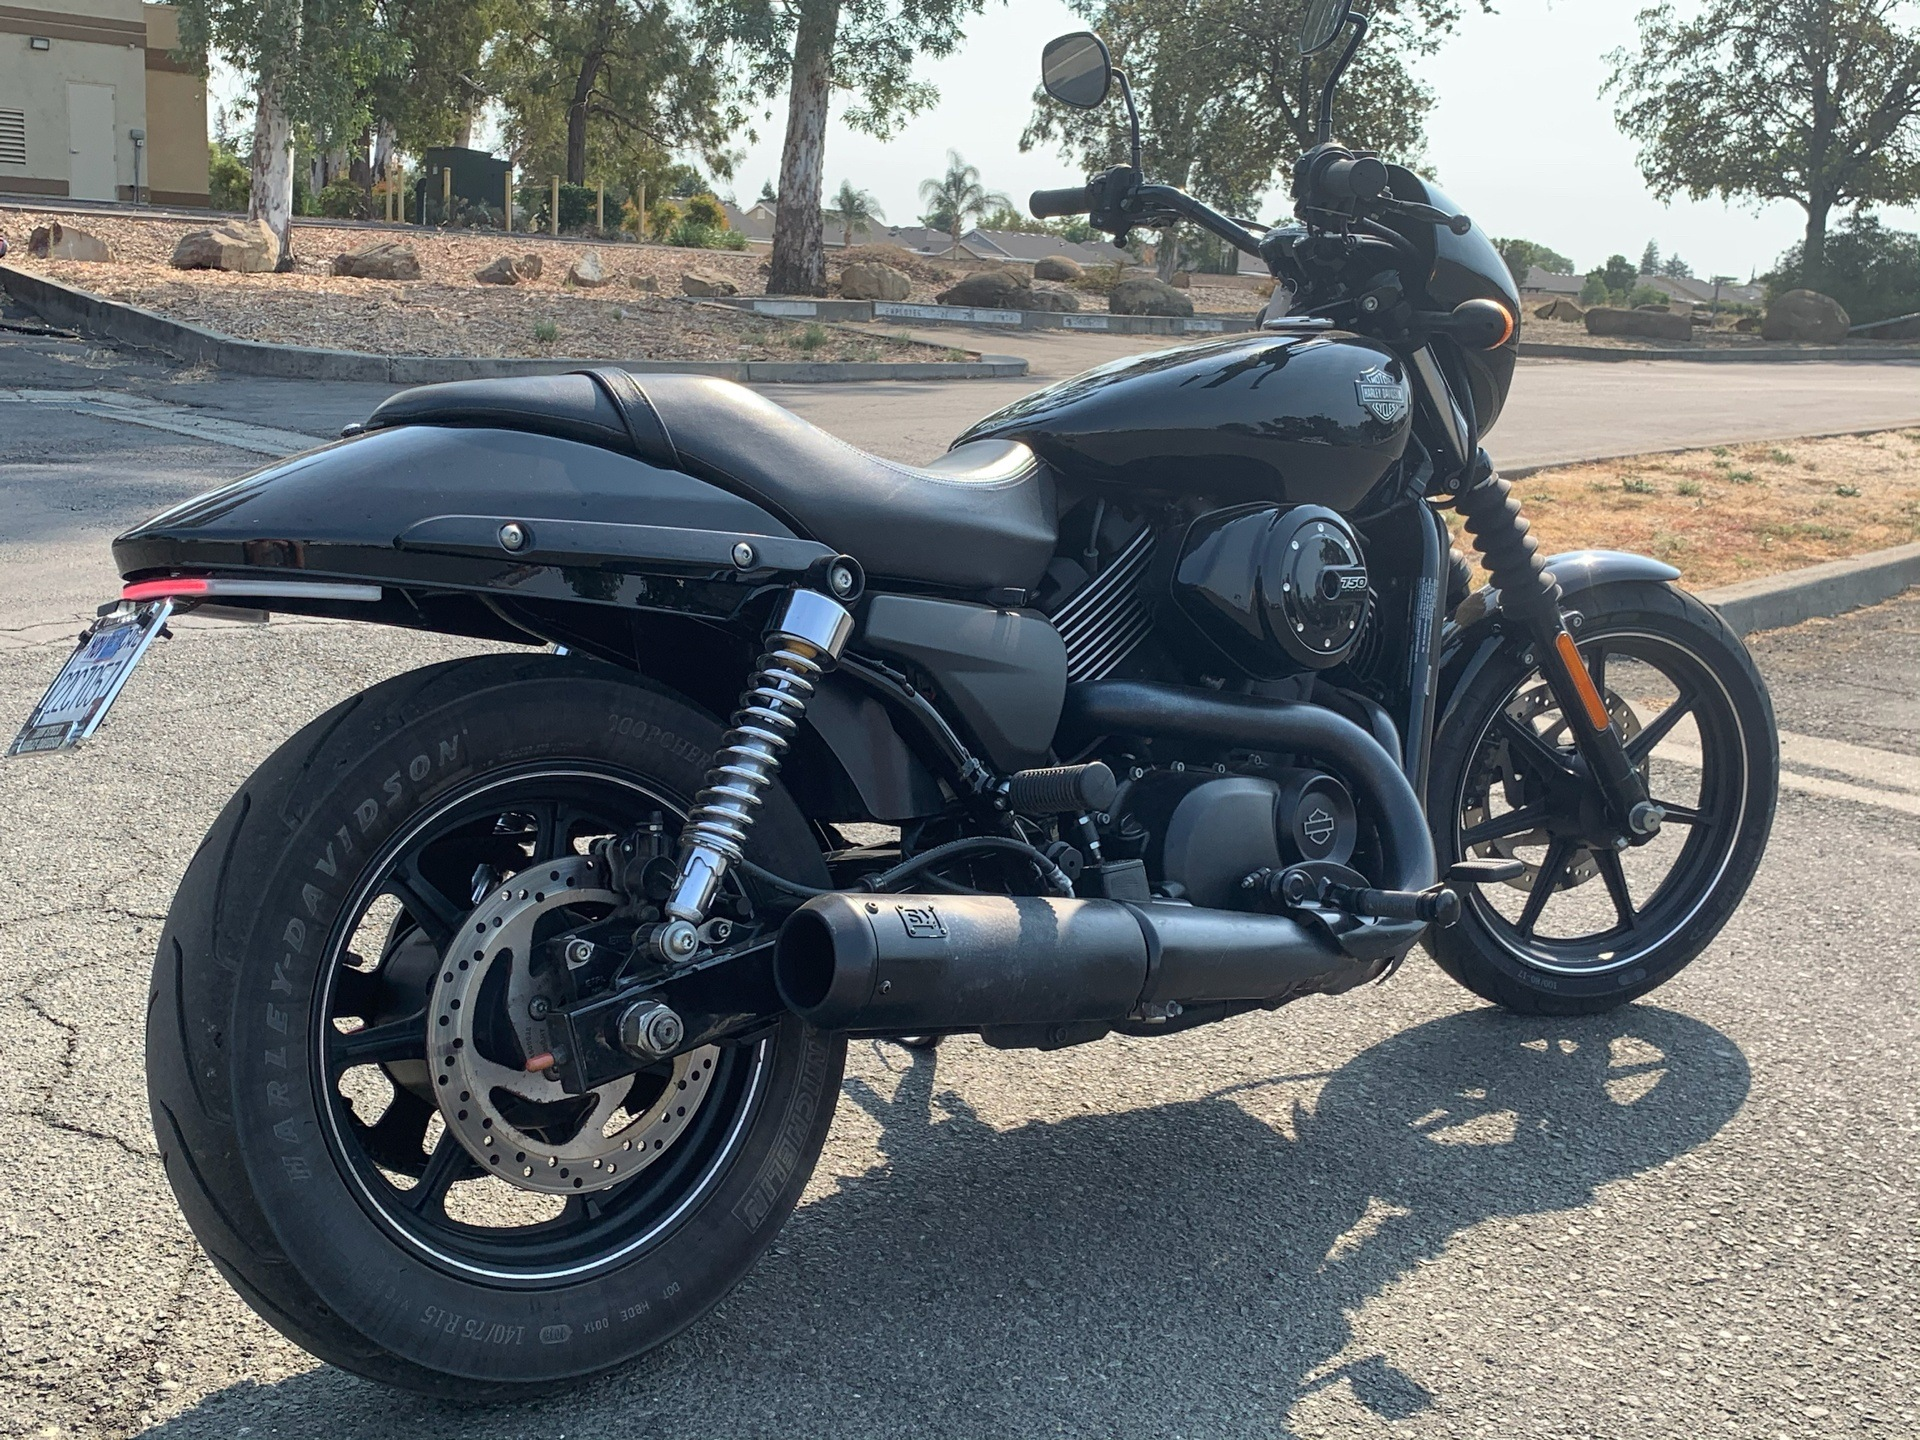 2015 Harley-Davidson Harley-Davidson Street™ 750 in Vacaville, California - Photo 5